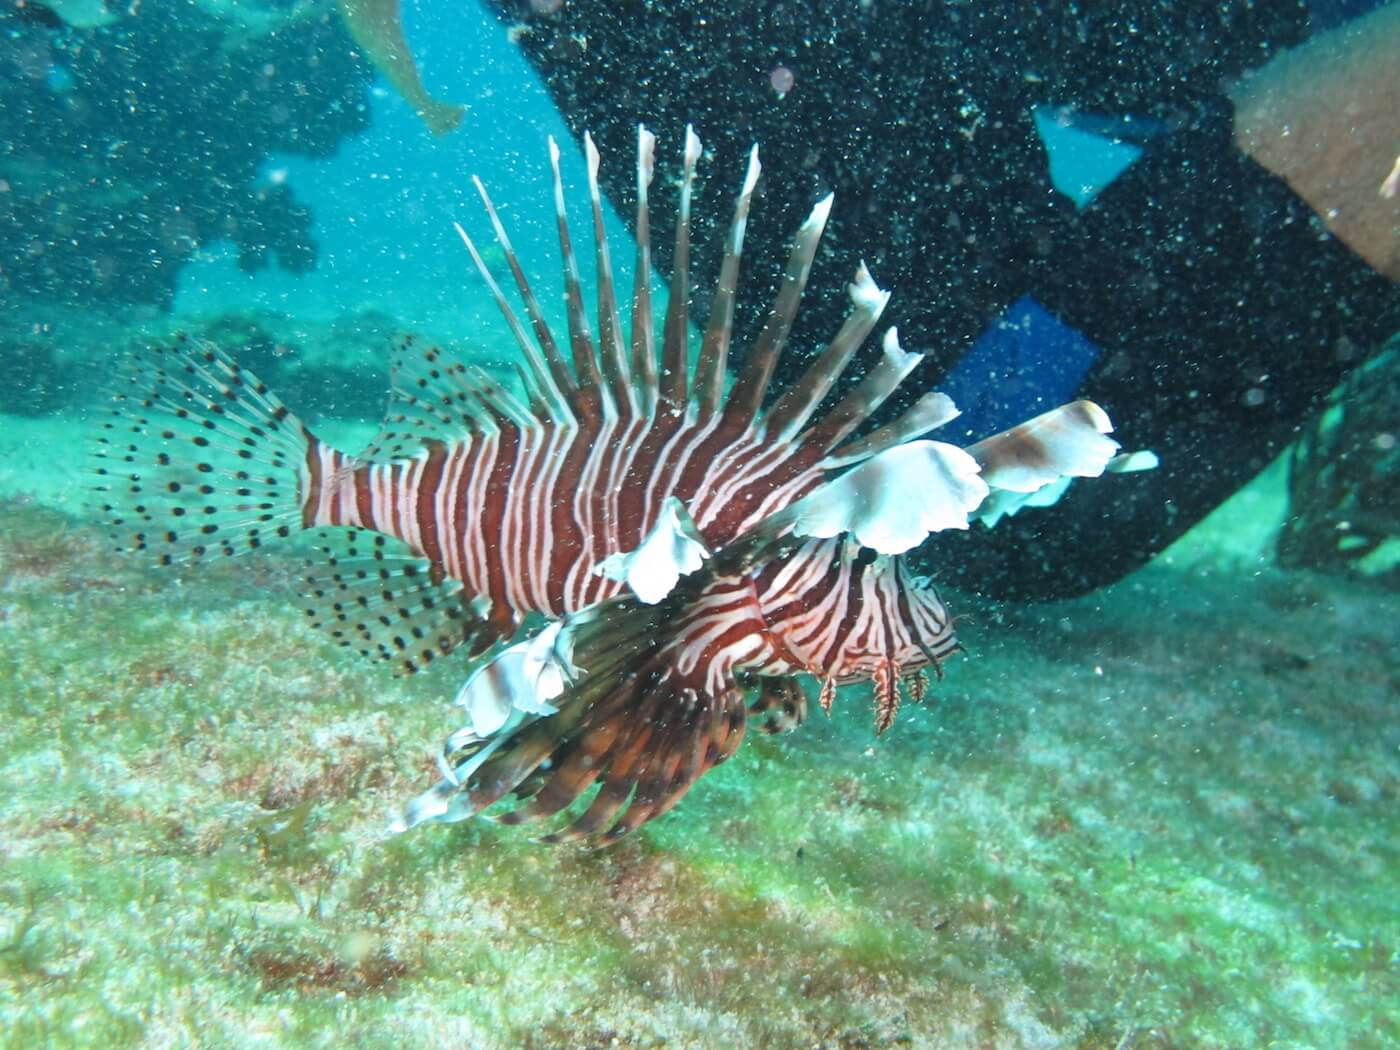 Wildlife-Snorkeling-Scuba-Diving-Tours-Isla-Mujeres-Carey-Dive-Center-13